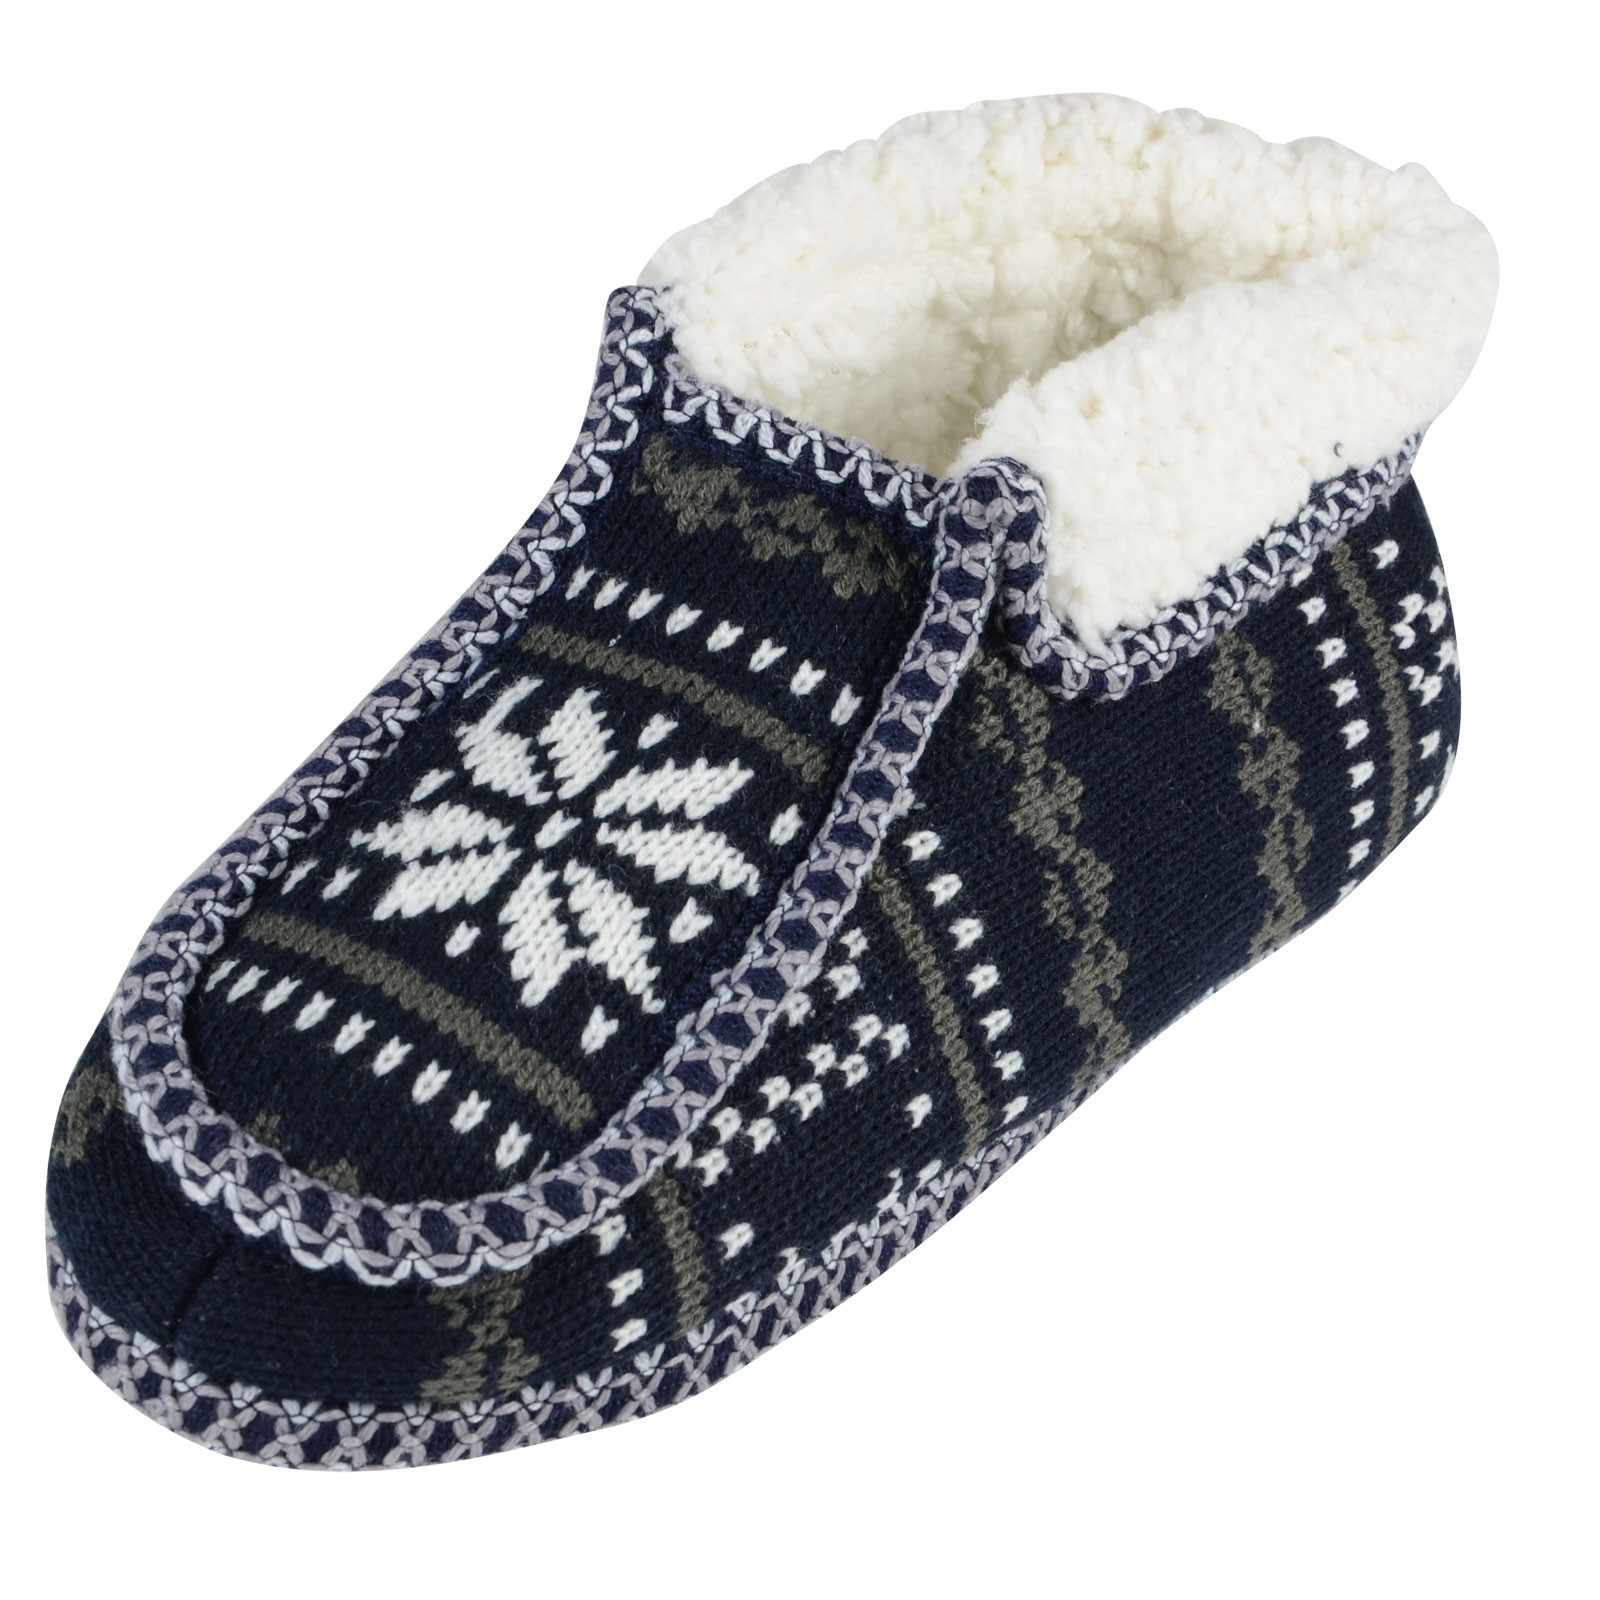 La s Fairisle Patterned Knitted Bootie Style Slippers